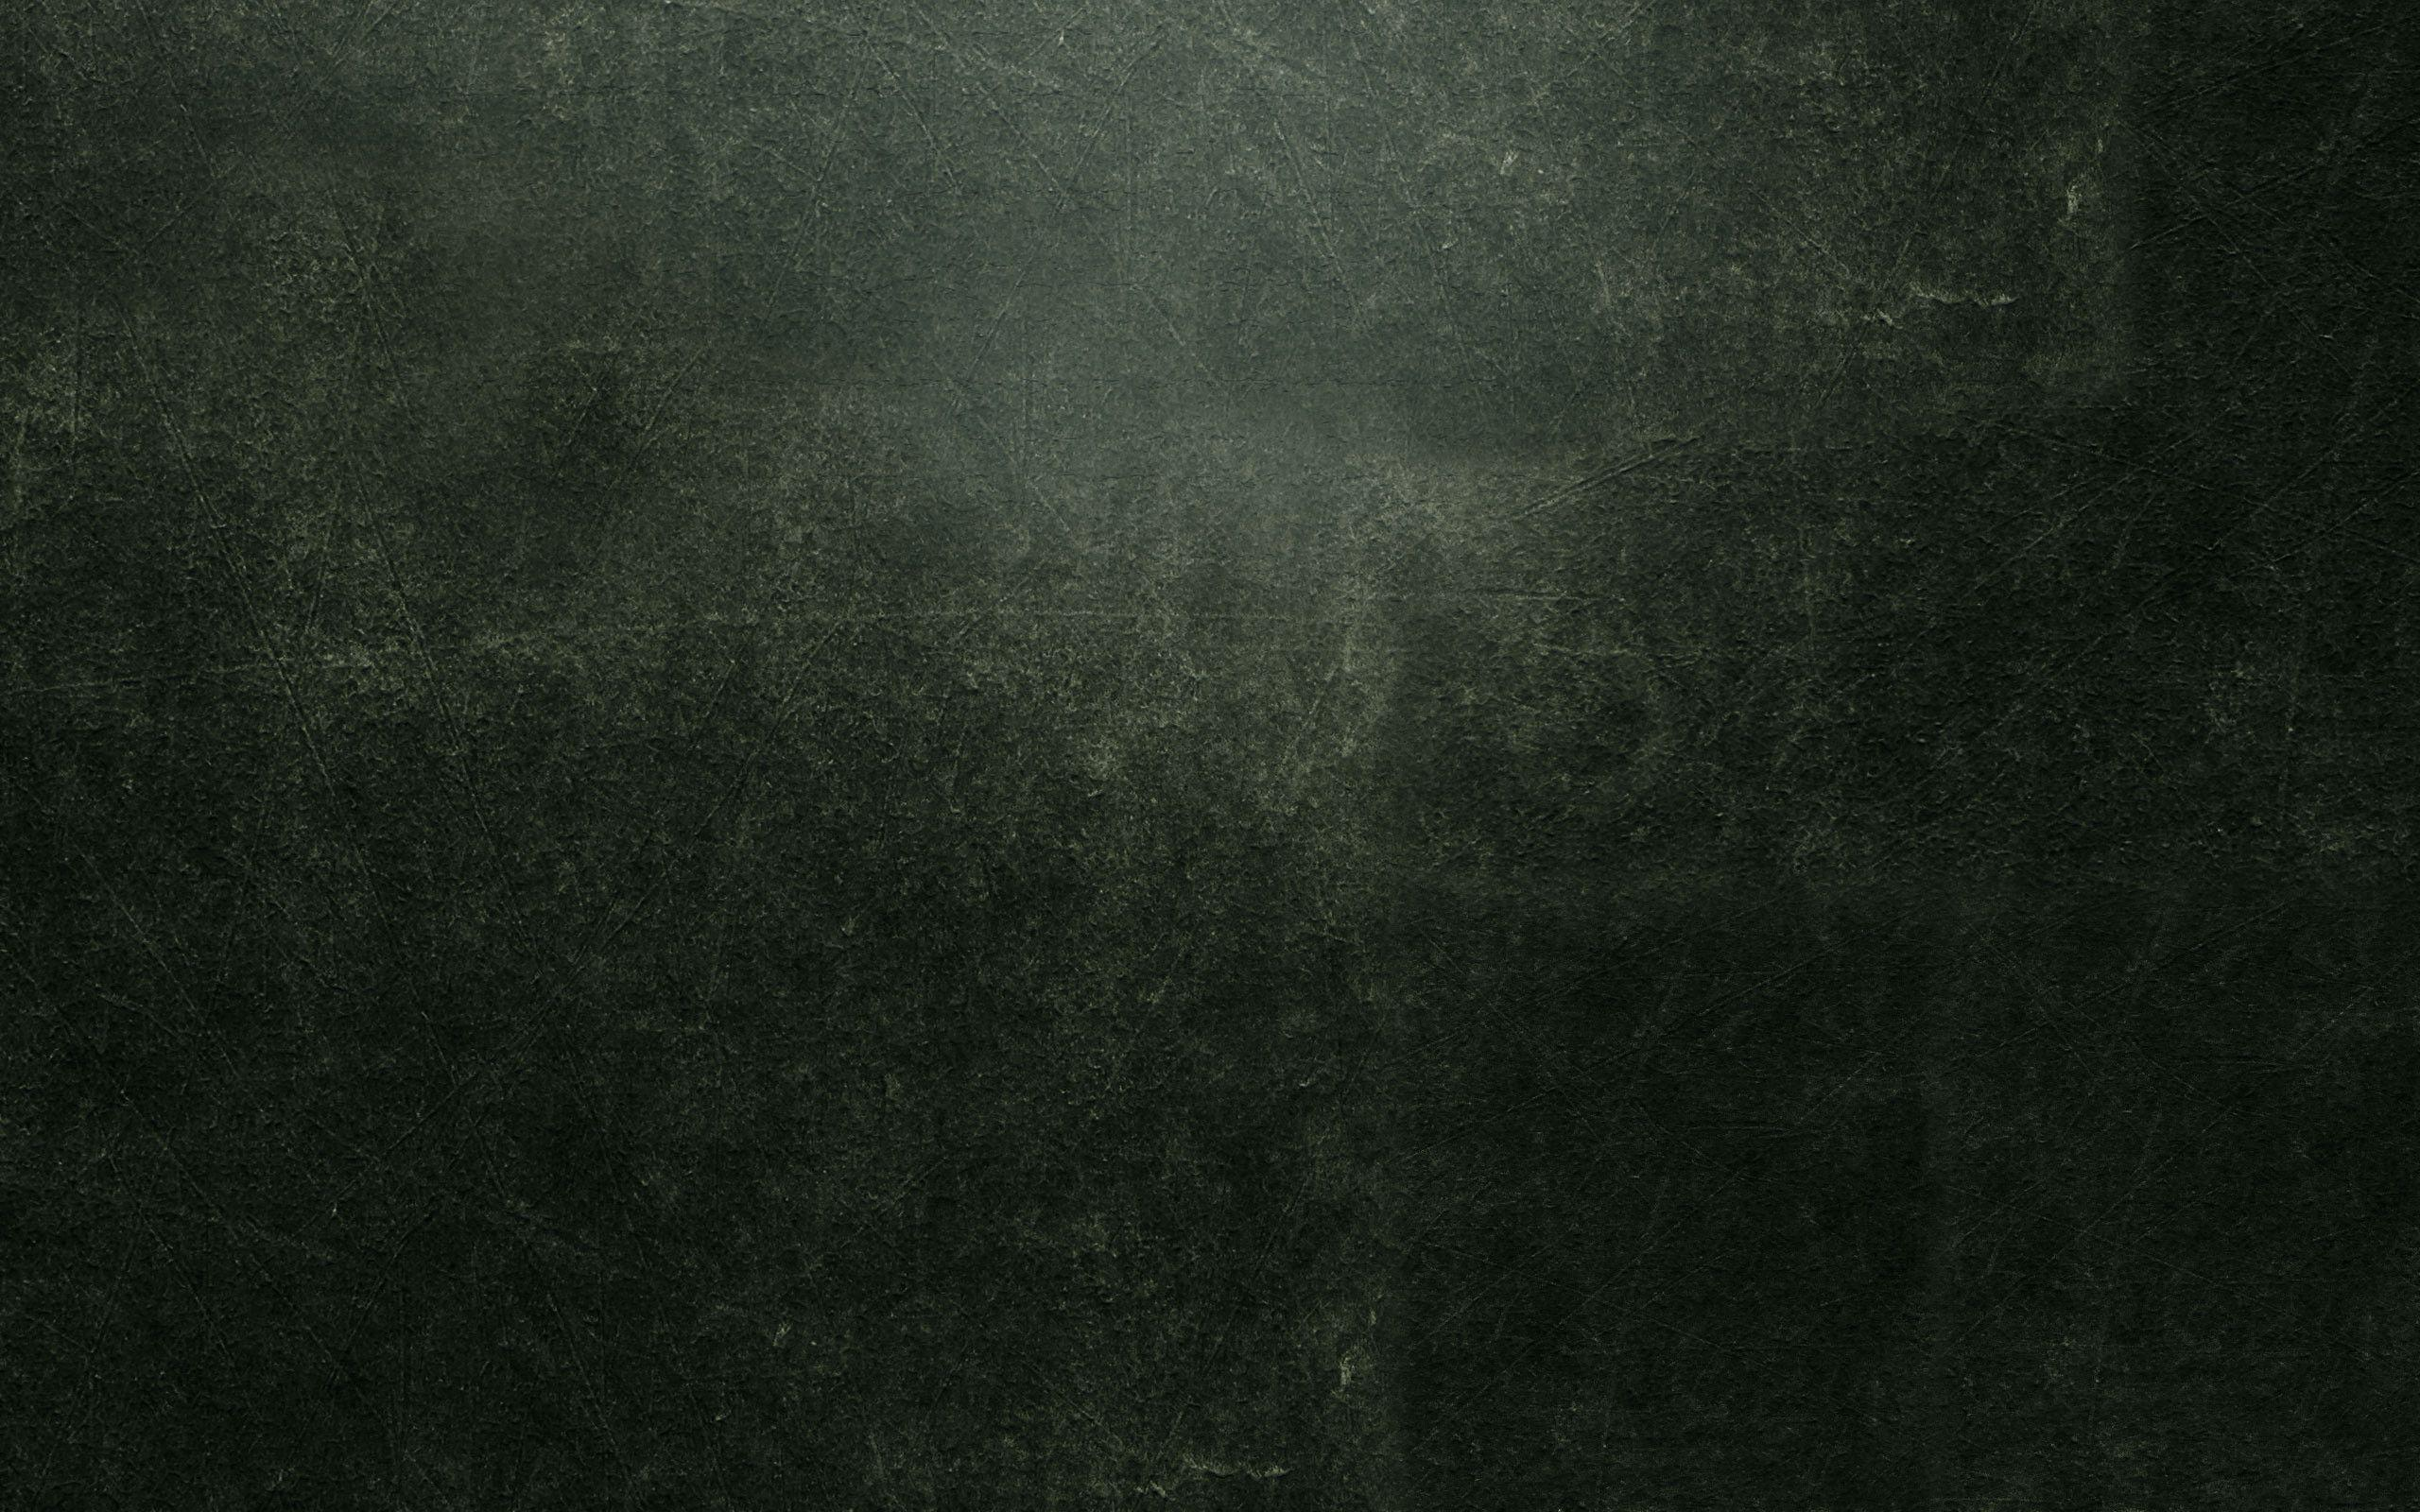 Texture Gray Dark Wallpapers 2560x1600 px Free Download